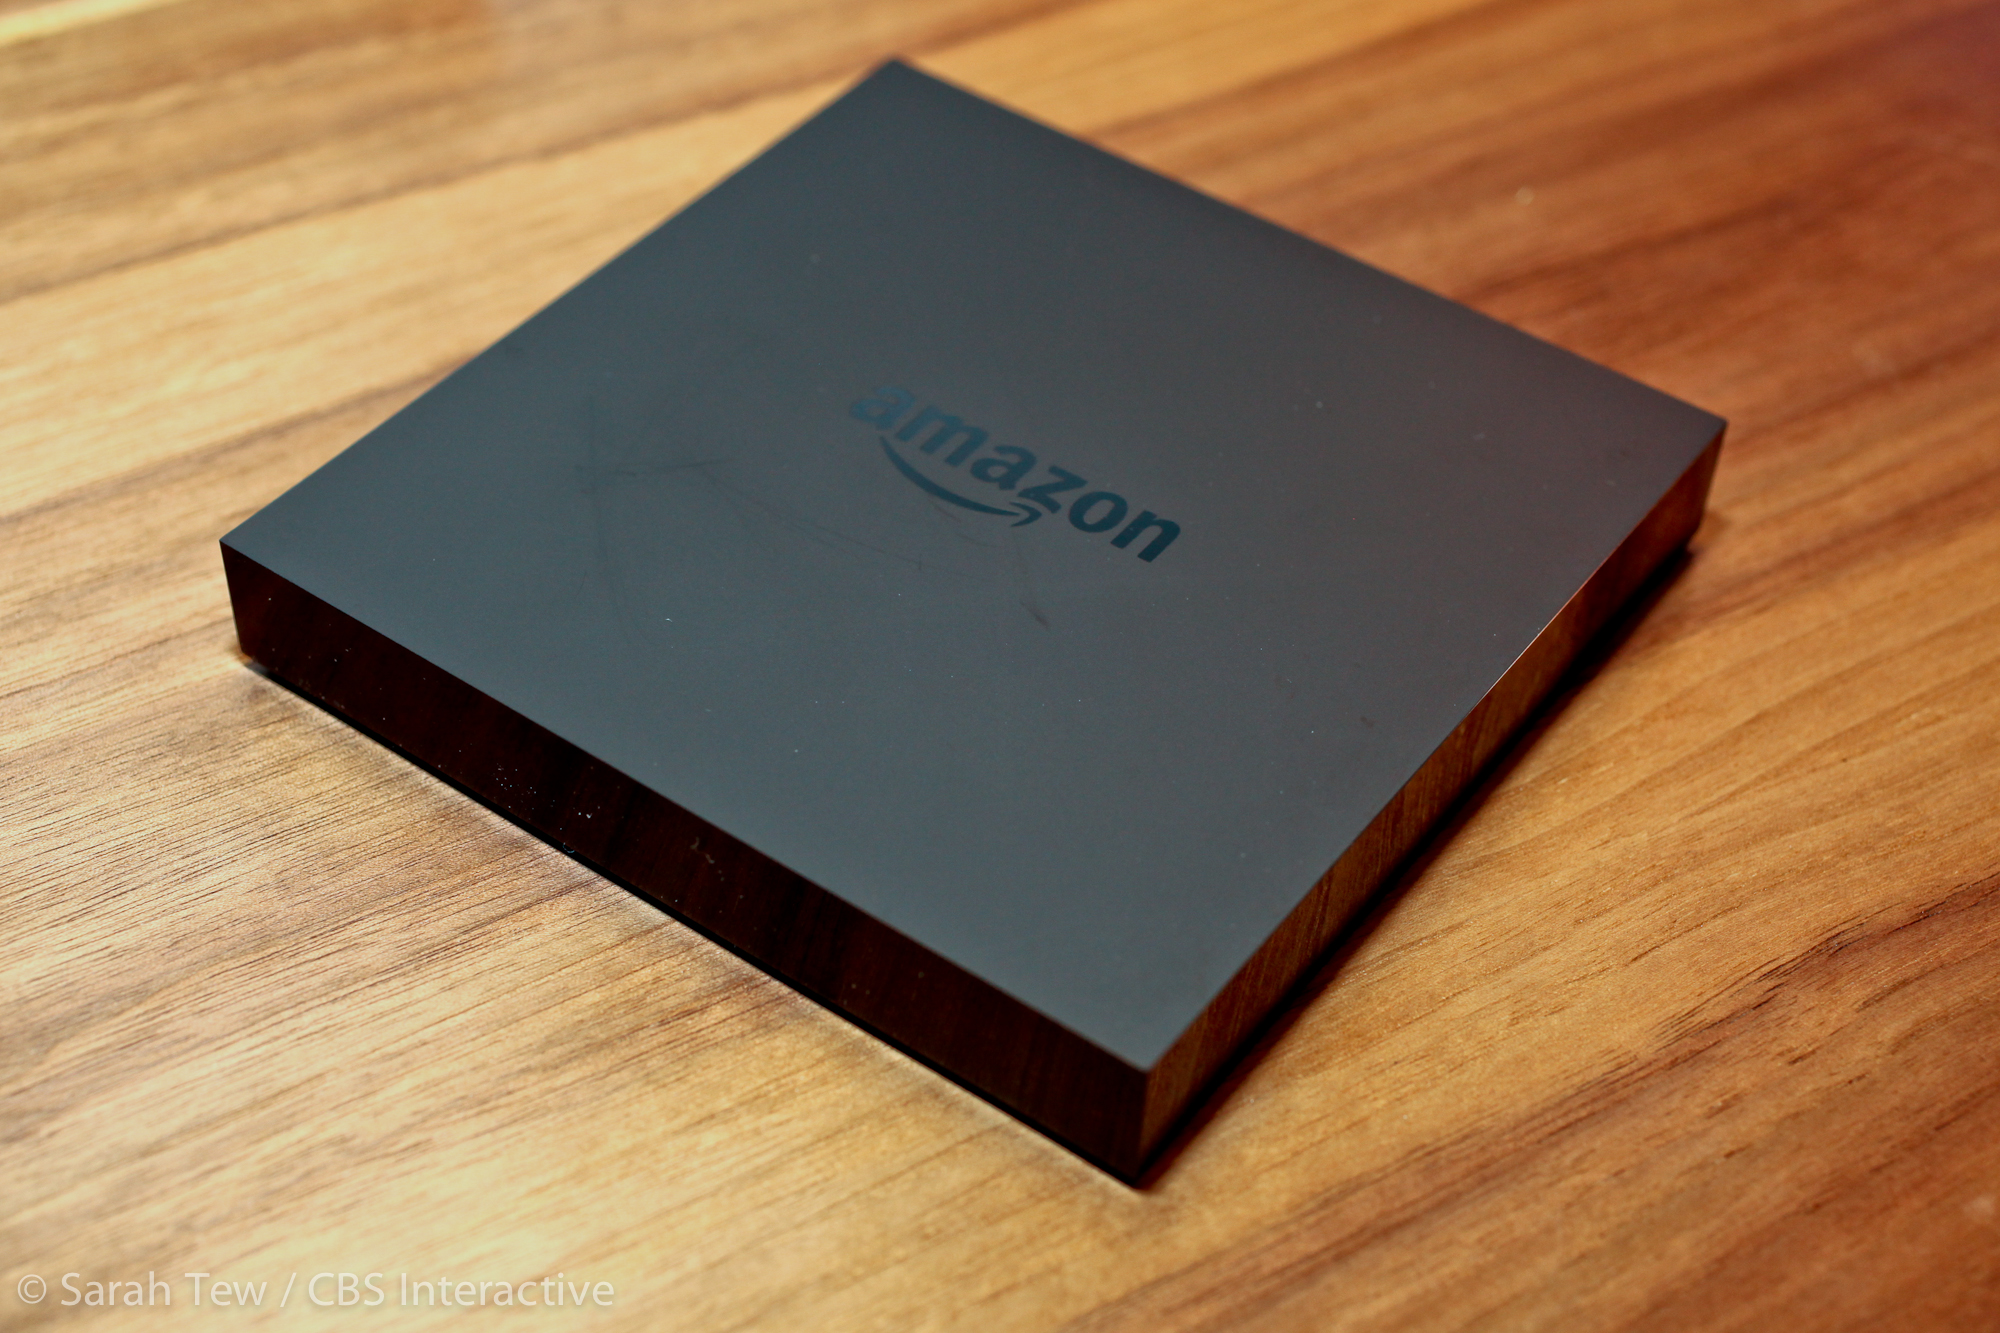 002amazonfiretv-product-photos.jpg